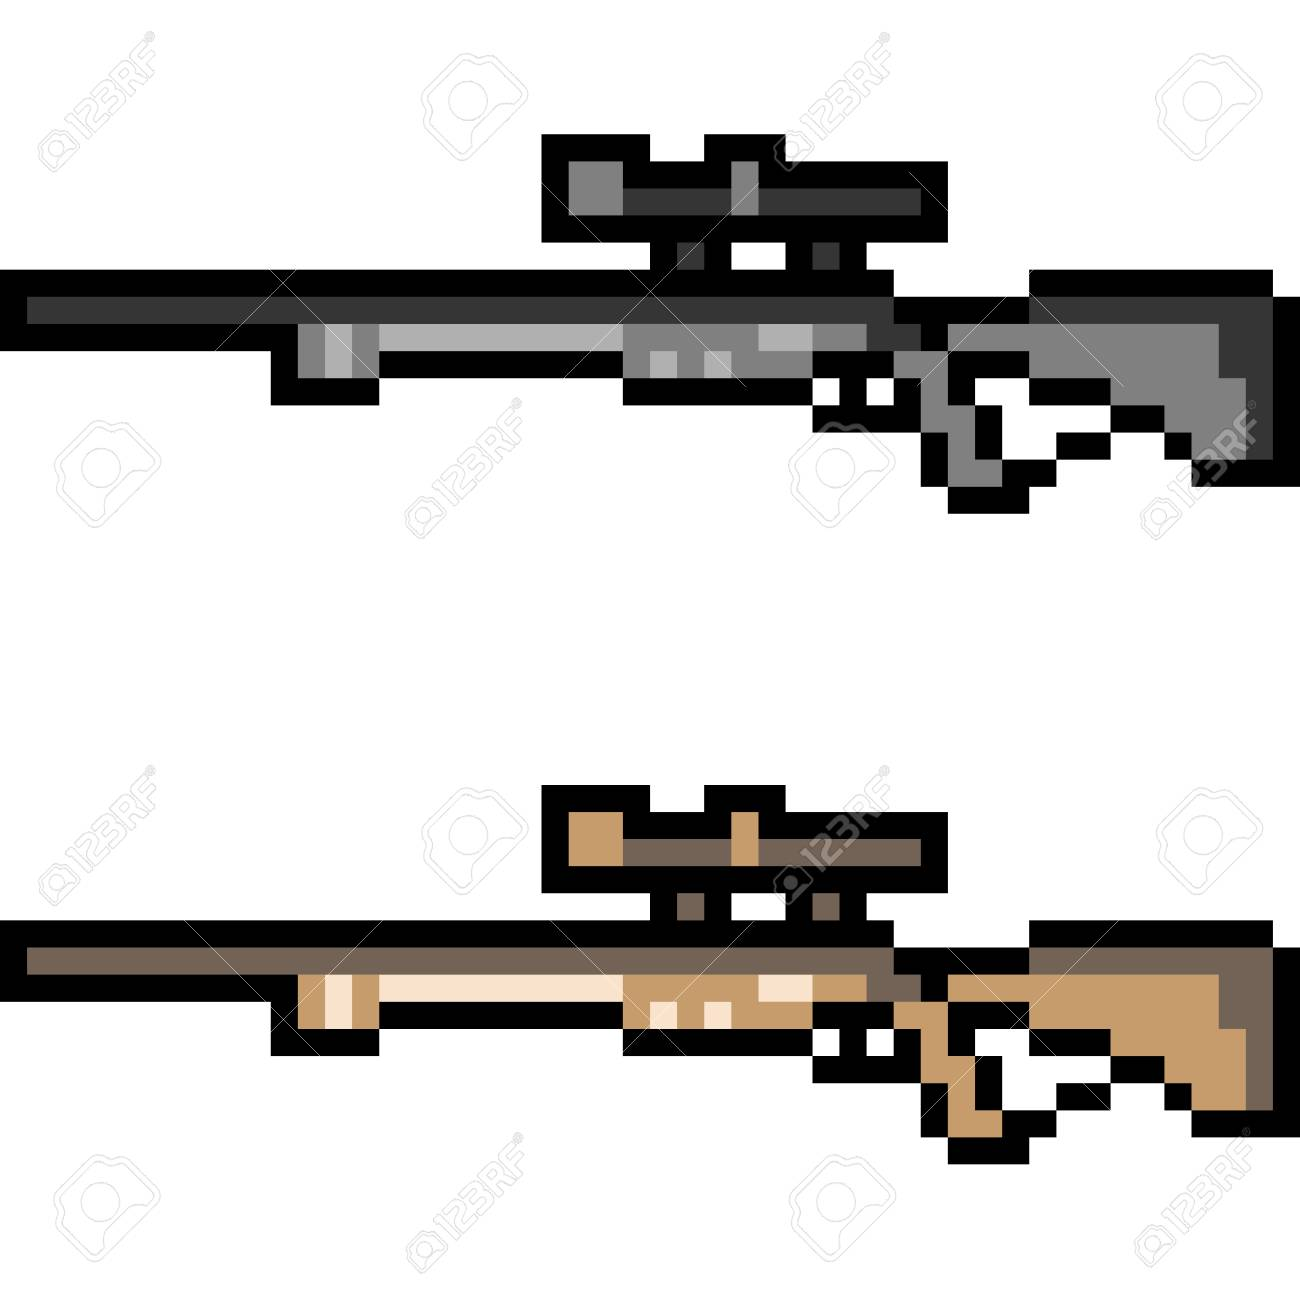 a pixel art sniper illustration - fortnite pixel art arme